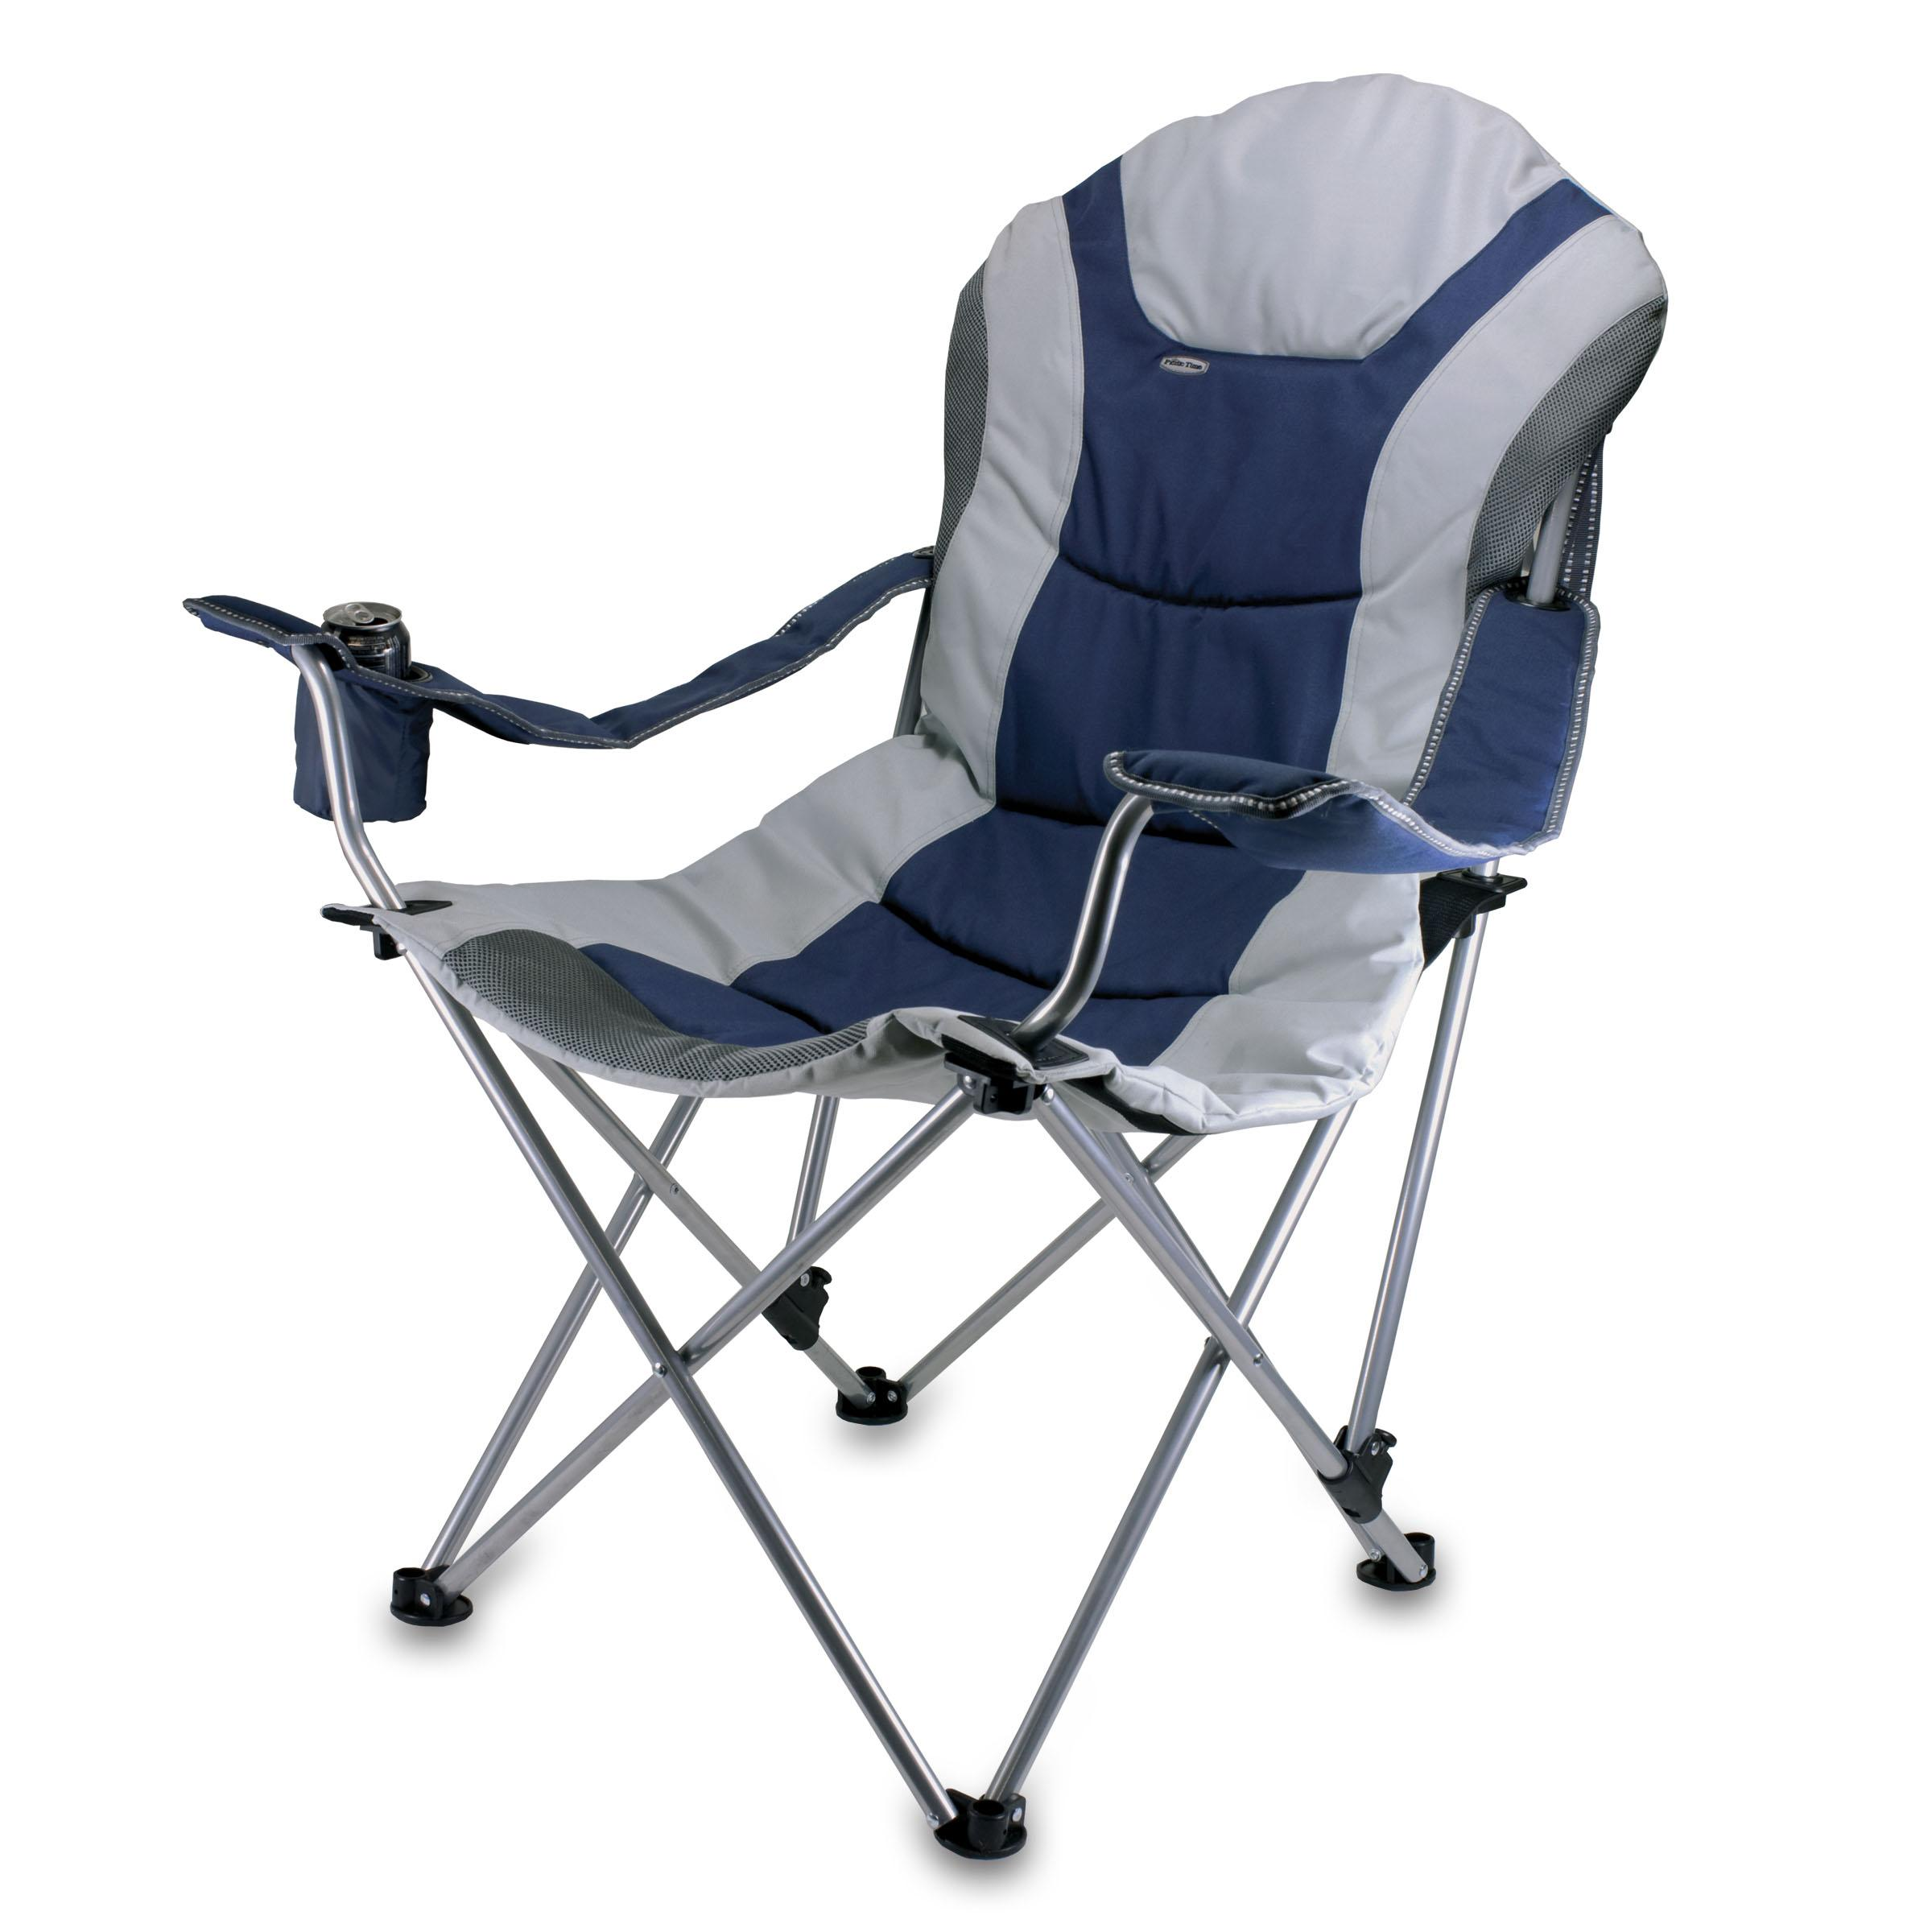 chairs camping oztent new king blogbeen camp goanna uepovym folding portable chair